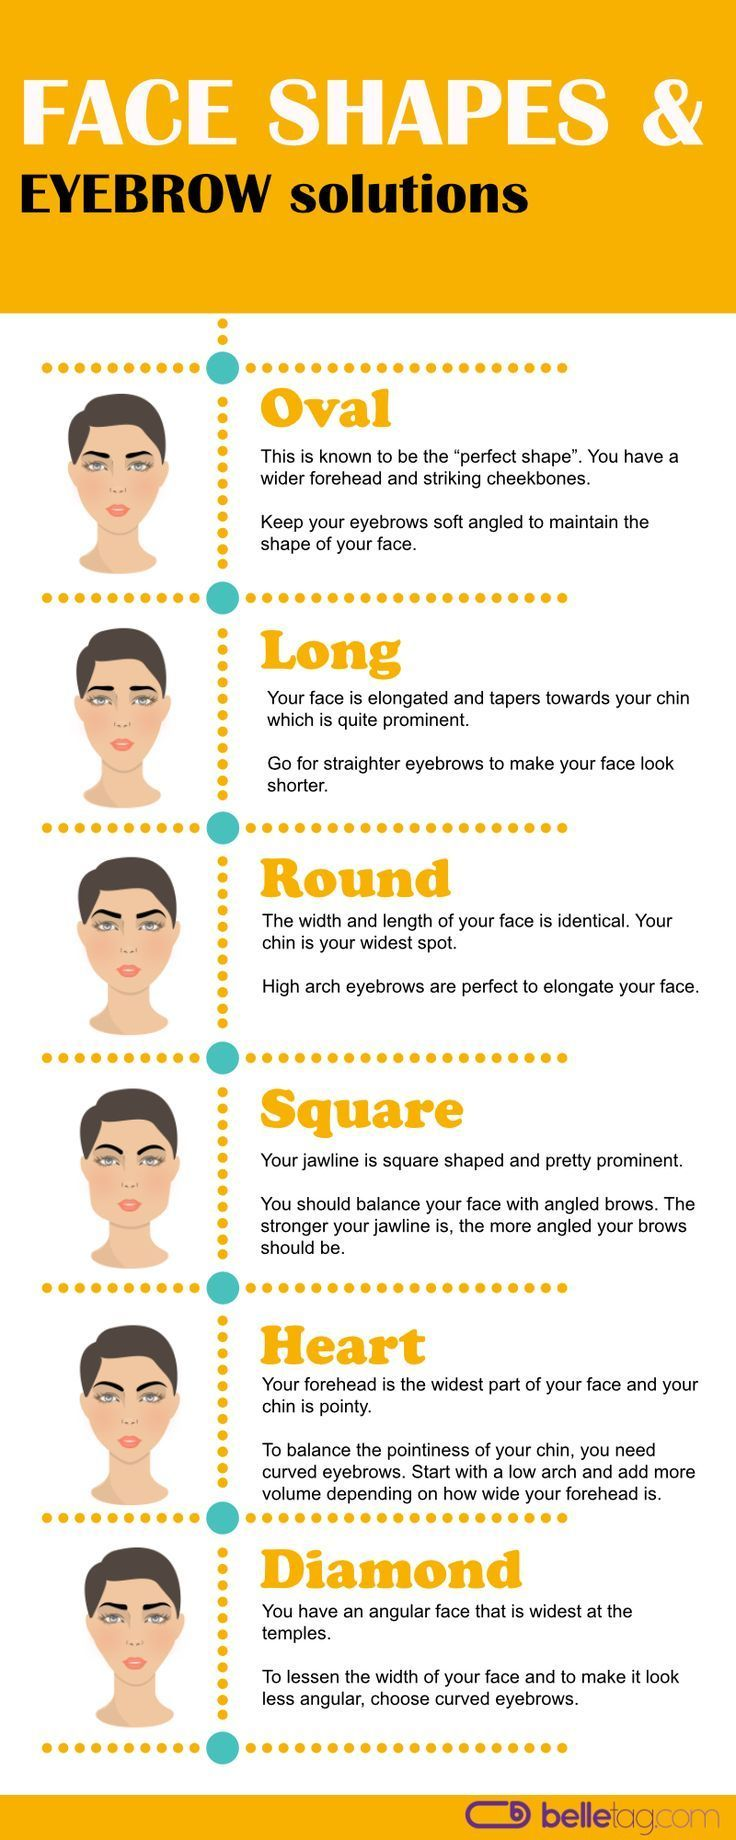 Visual Guide Of How To Find What Eyebrow Shape To Choose Based On